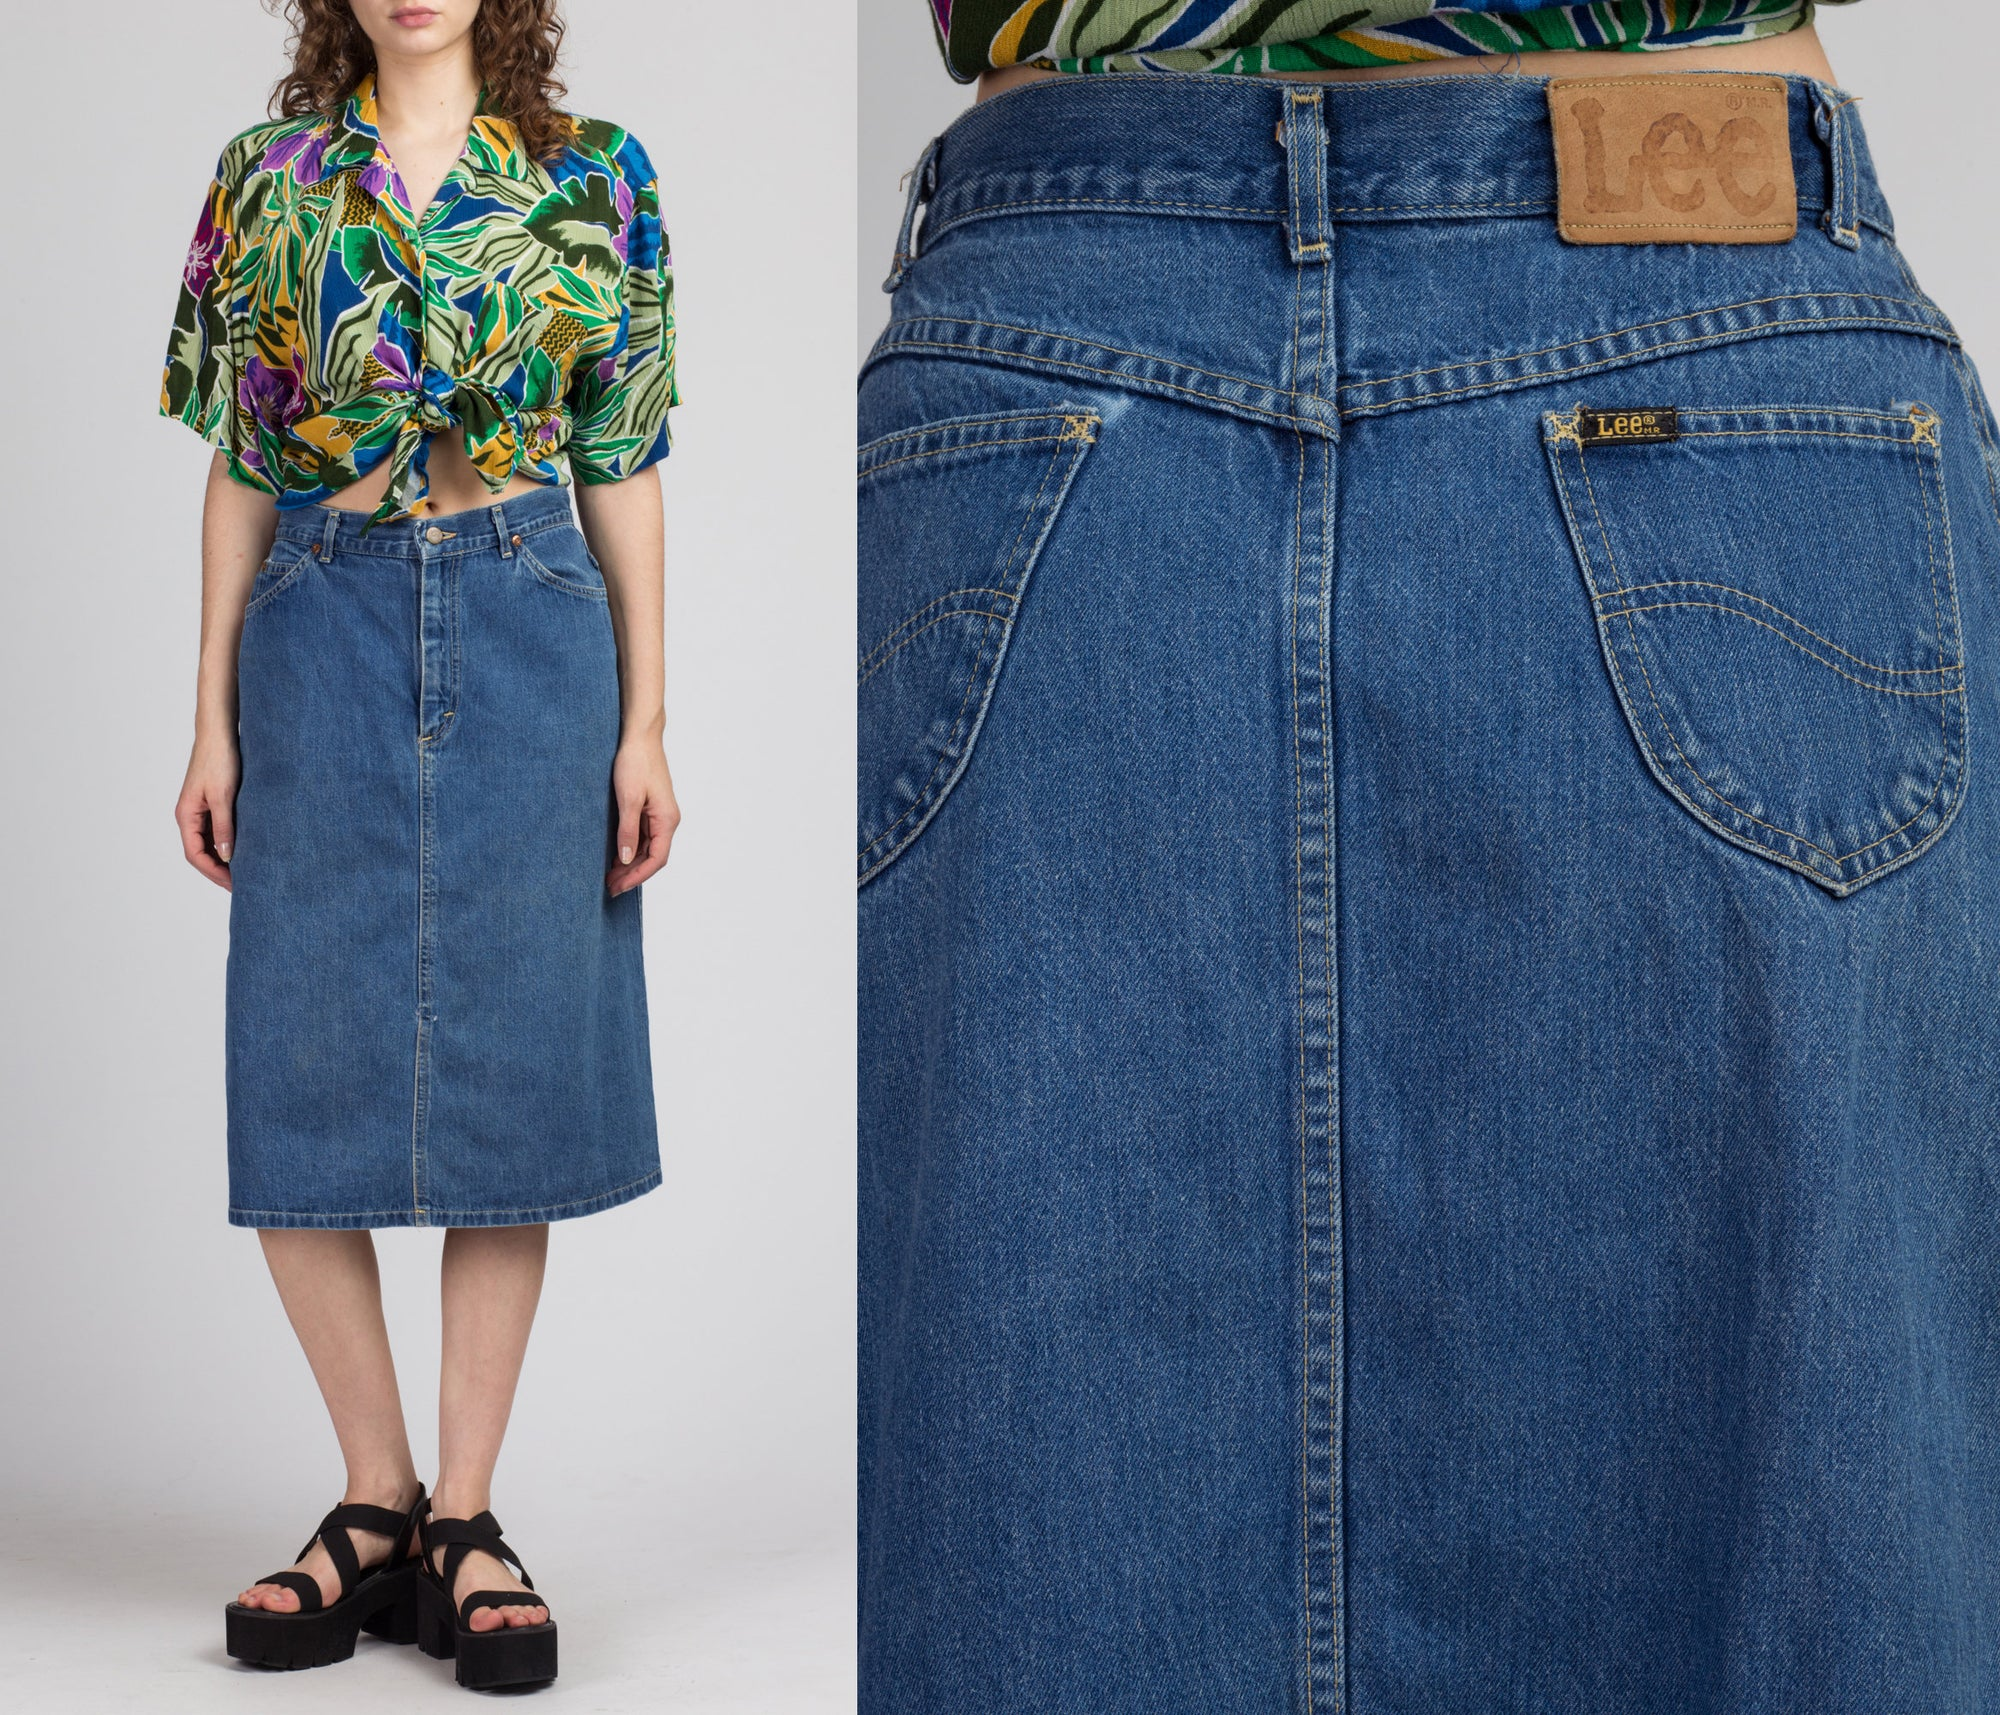 90s Lee Denim Midi Skirt - Medium